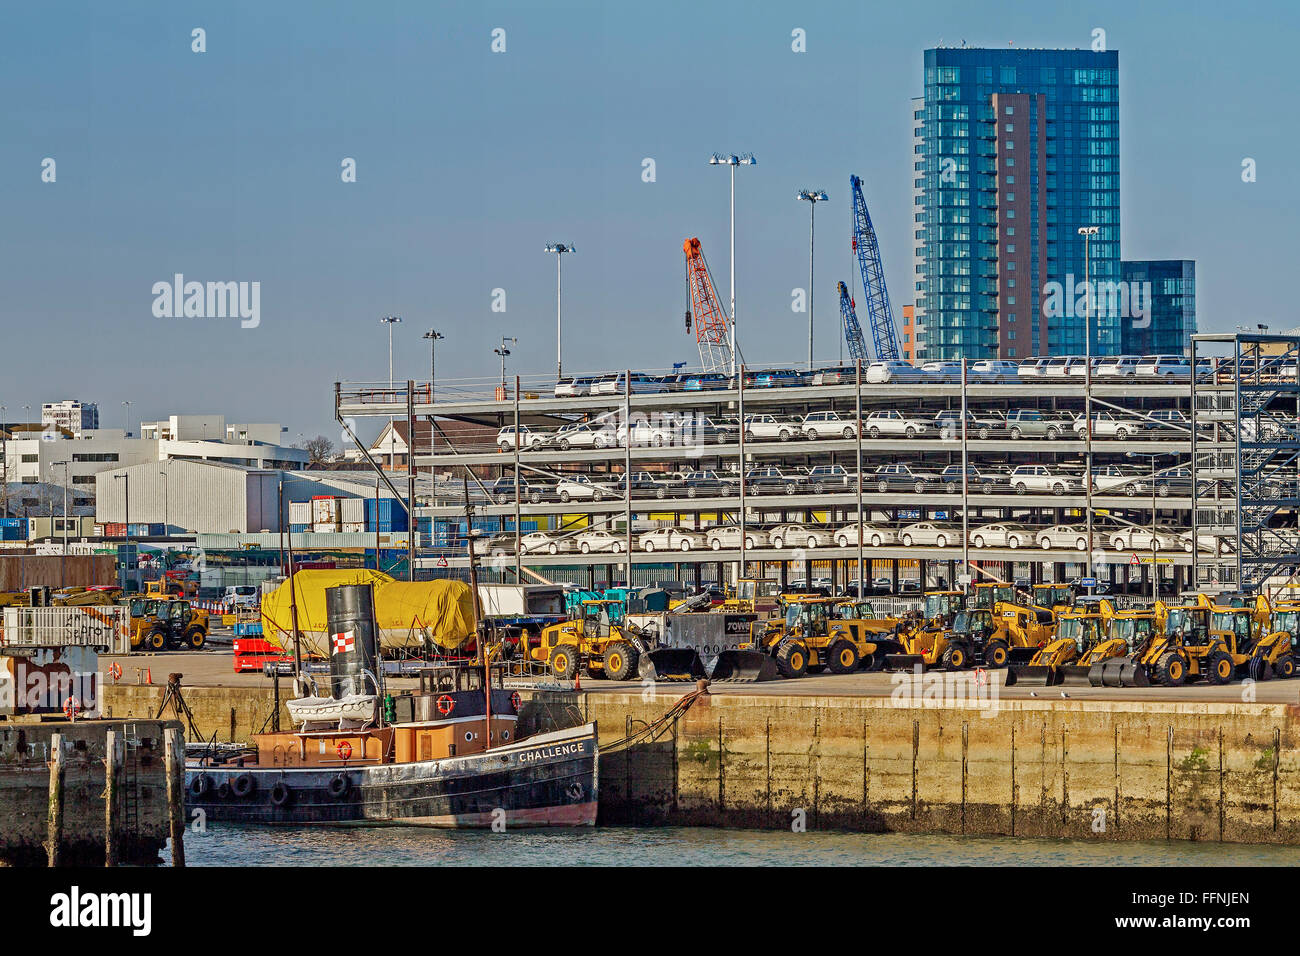 Vehi cles For Export At The Dock Southampton UK - Stock Image